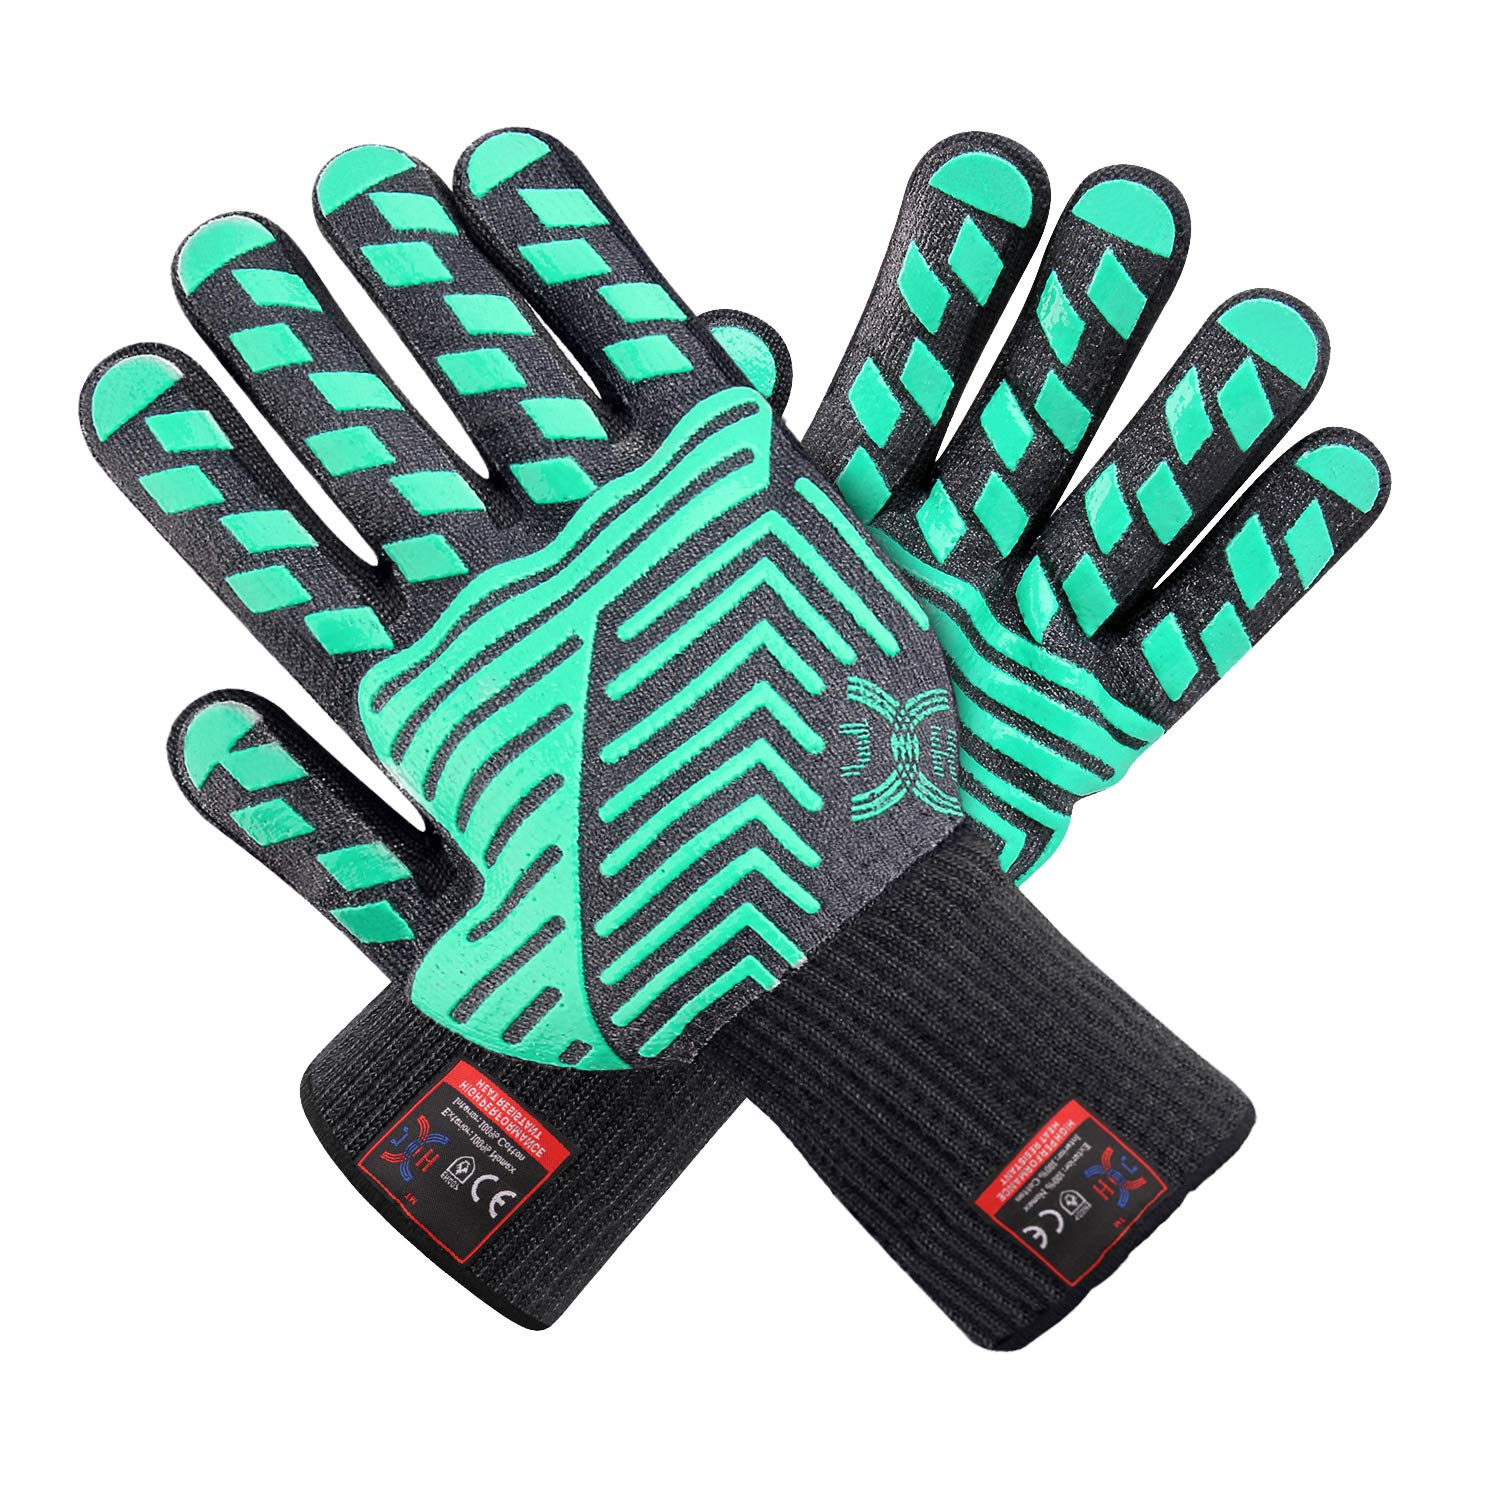 JH Heat Resistant Oven Gloves:EN407 Certified Withstand 932 °F, Double Layers Silicone Coating, BBQ Gloves & Oven Mitts for Cooking, Kitchen, Fireplace, Grilling, 1 Pair (Regular Cuff)